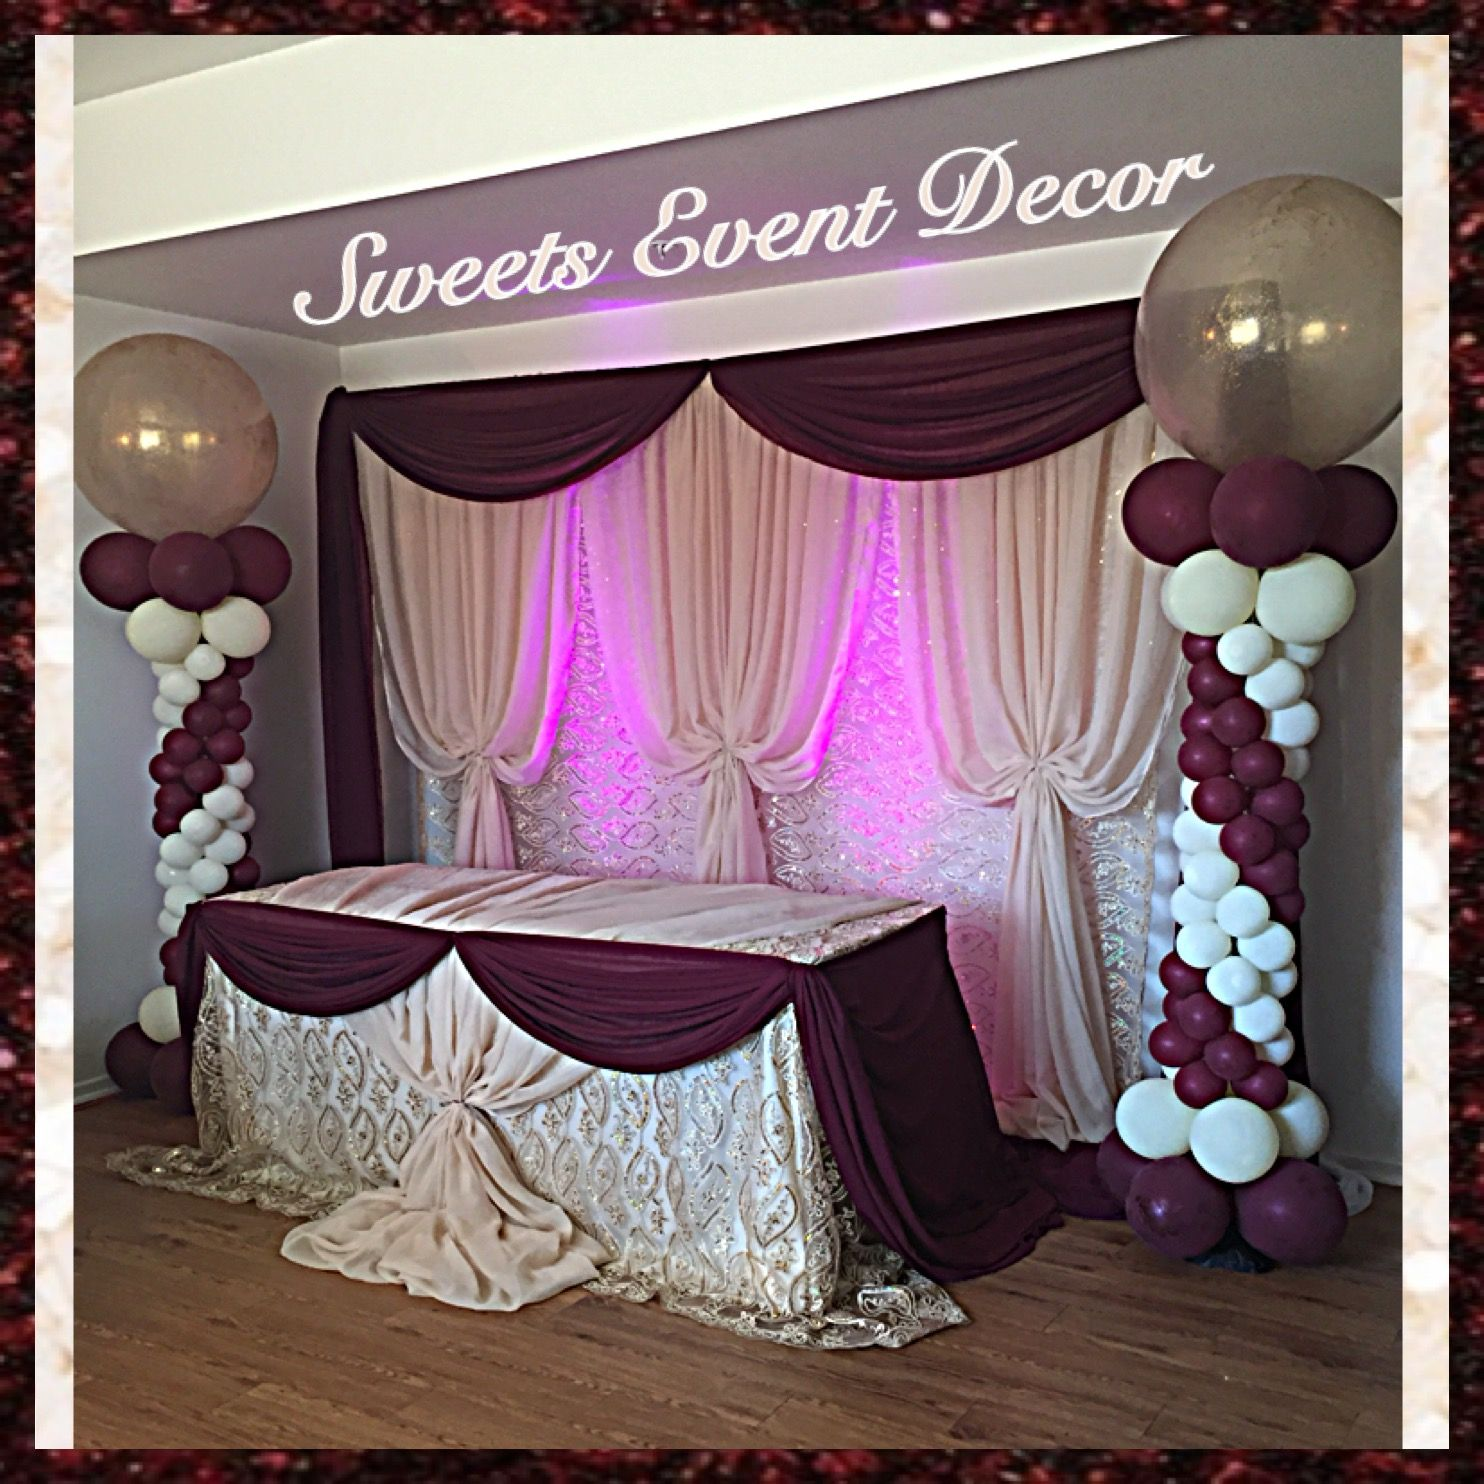 Burgundy Wedding Decoration By: Sweets Event Decor